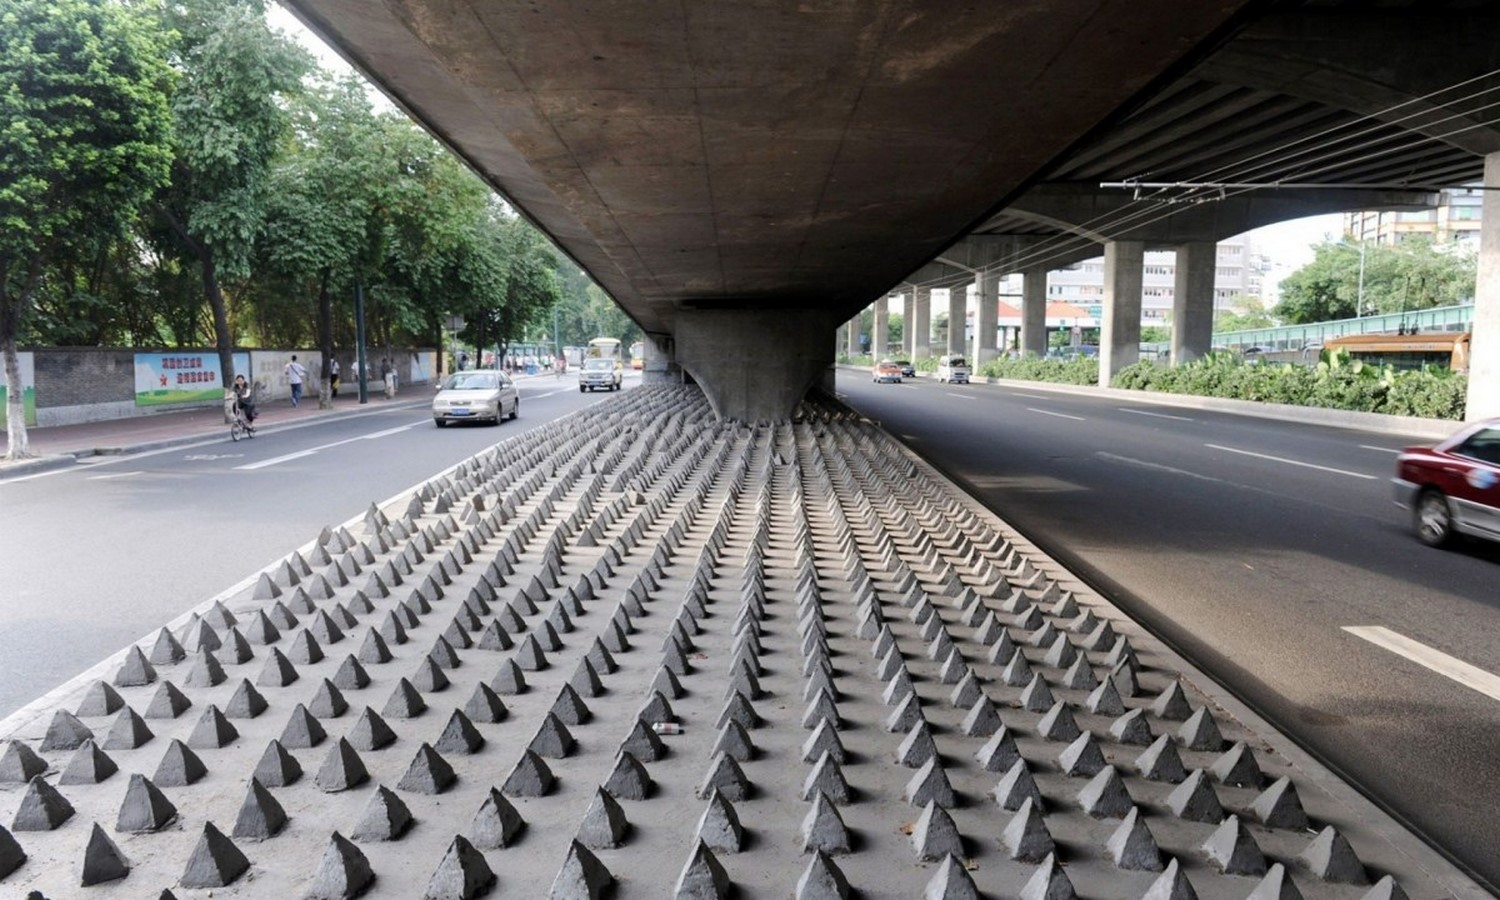 Under-road spikes in Guangzhou, China- Sheet1